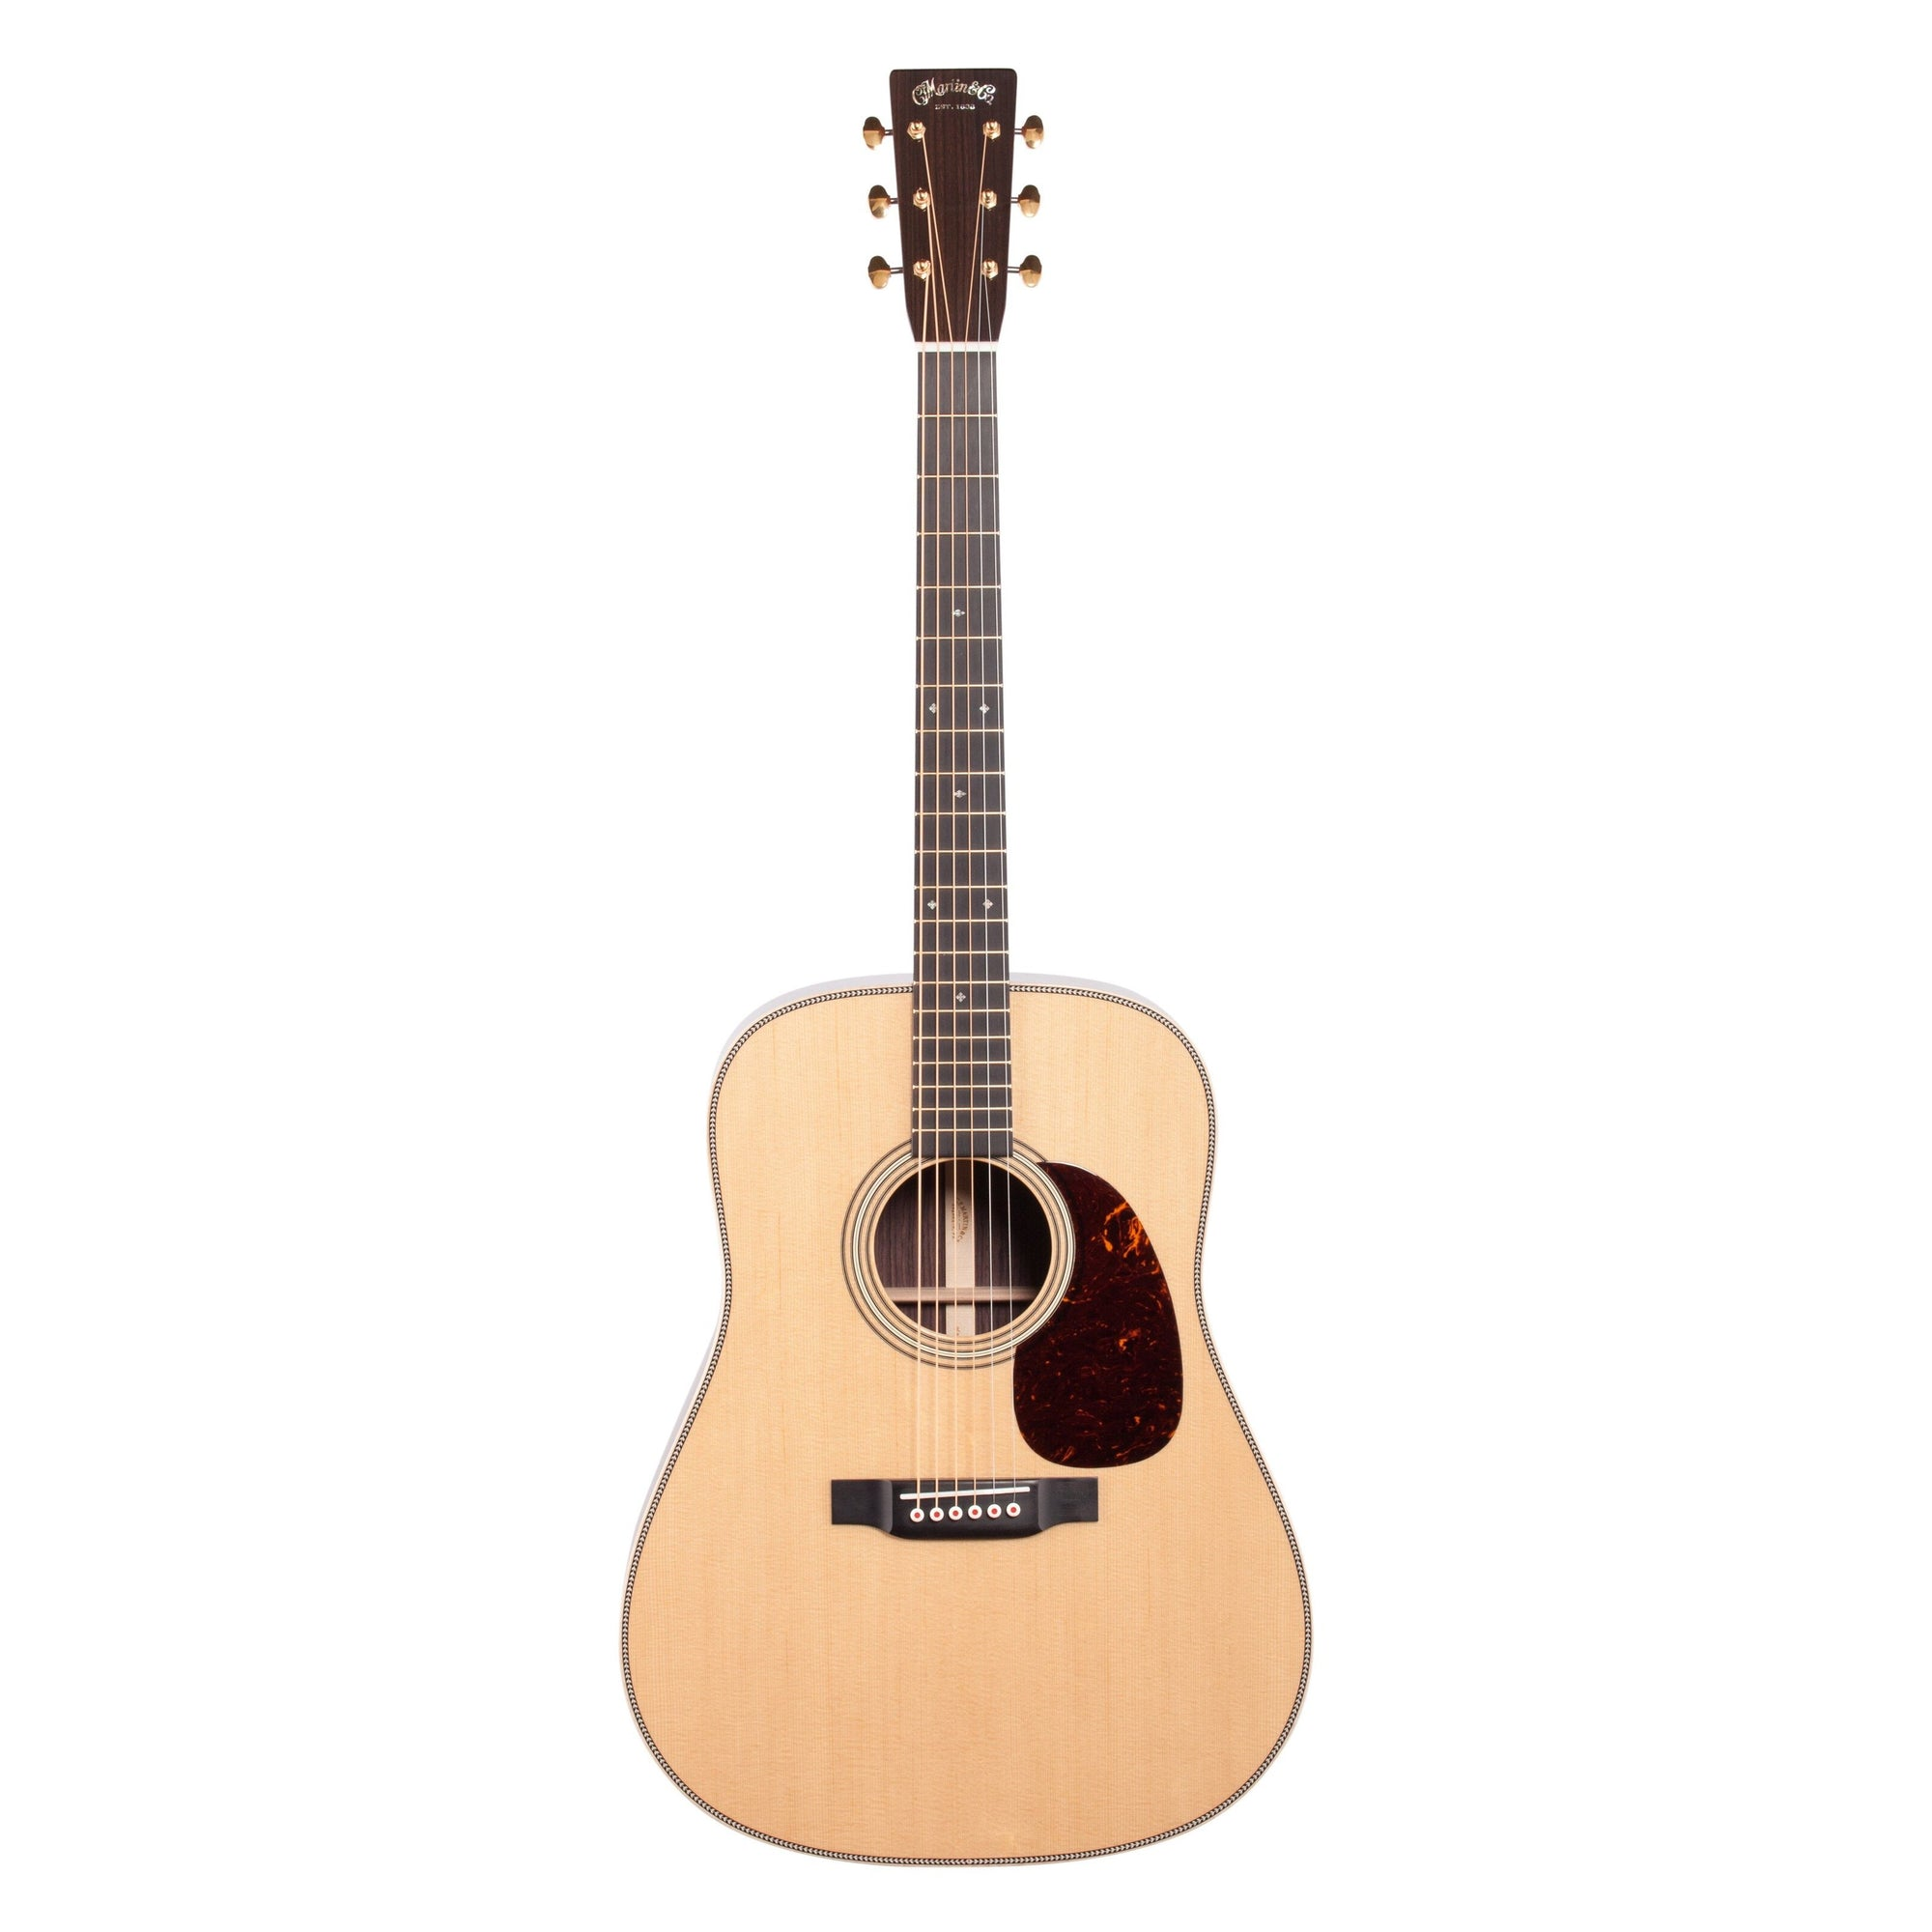 Martin D-28 Modern Deluxe Dreadnought Acoustic Guitar (with Case)